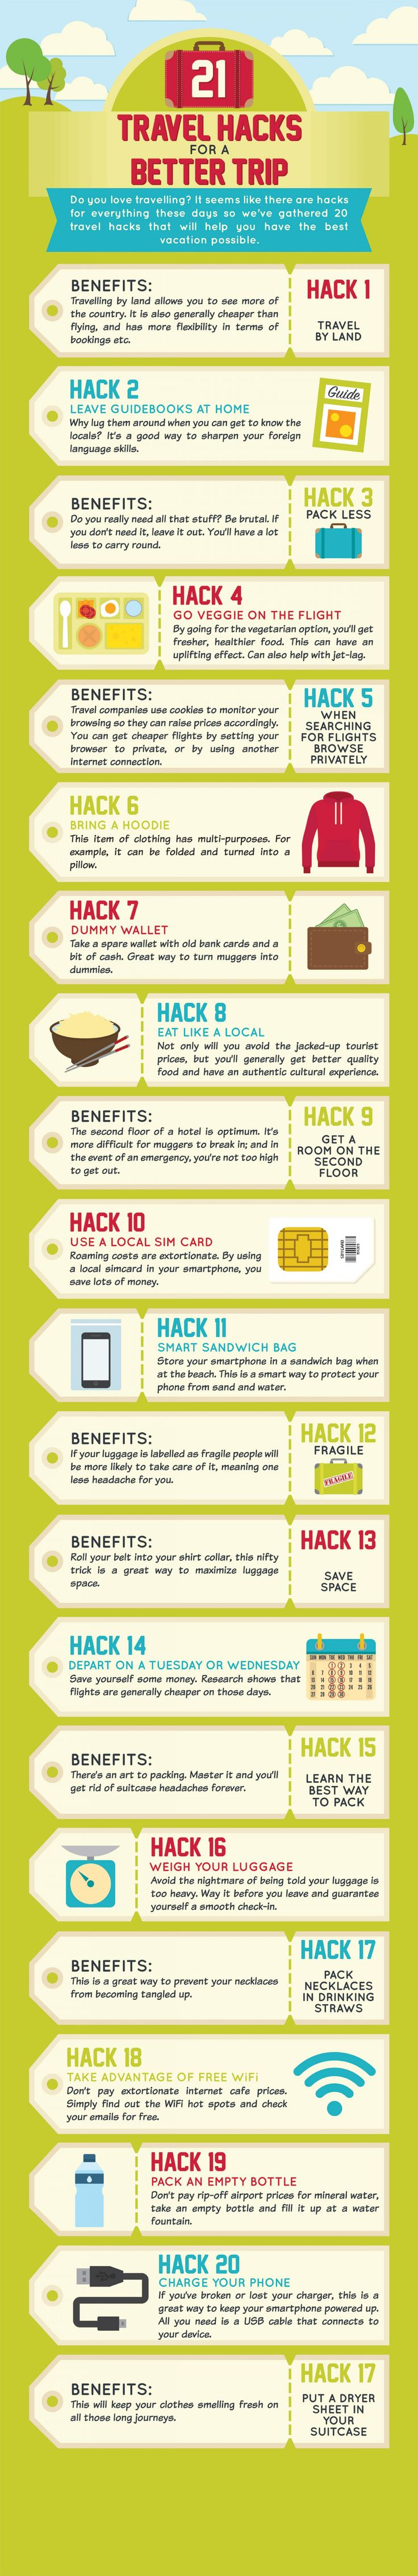 Ways to Make Your Next Family Vacation a Whole Lot Easier Infographic: 21 Useful Travel Hacks For A Better Trip - DesignTAXI.com